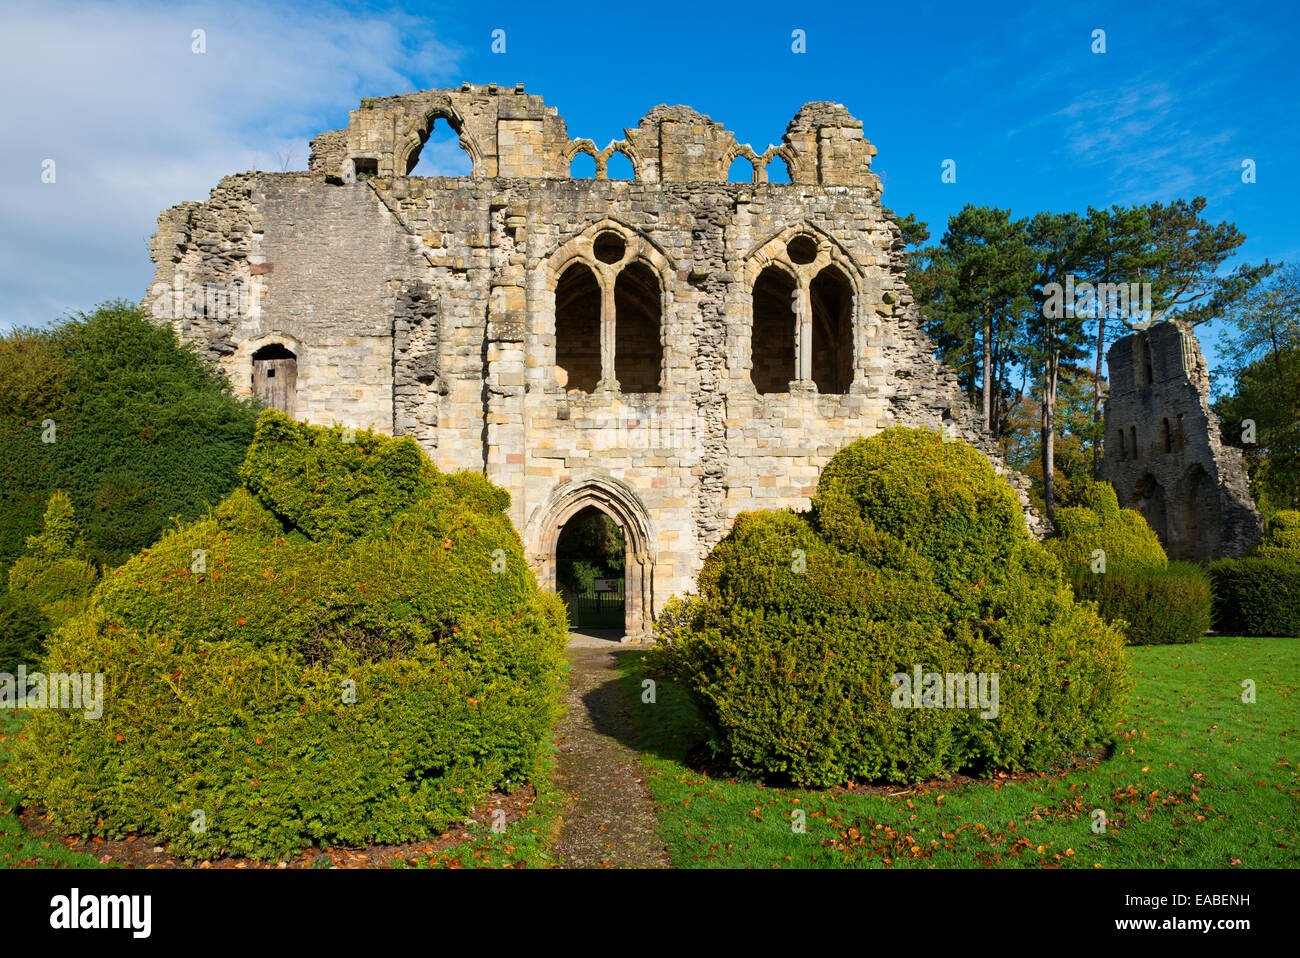 The remains of Much Wenlock Priory, Shropshire, England. - Stock Image